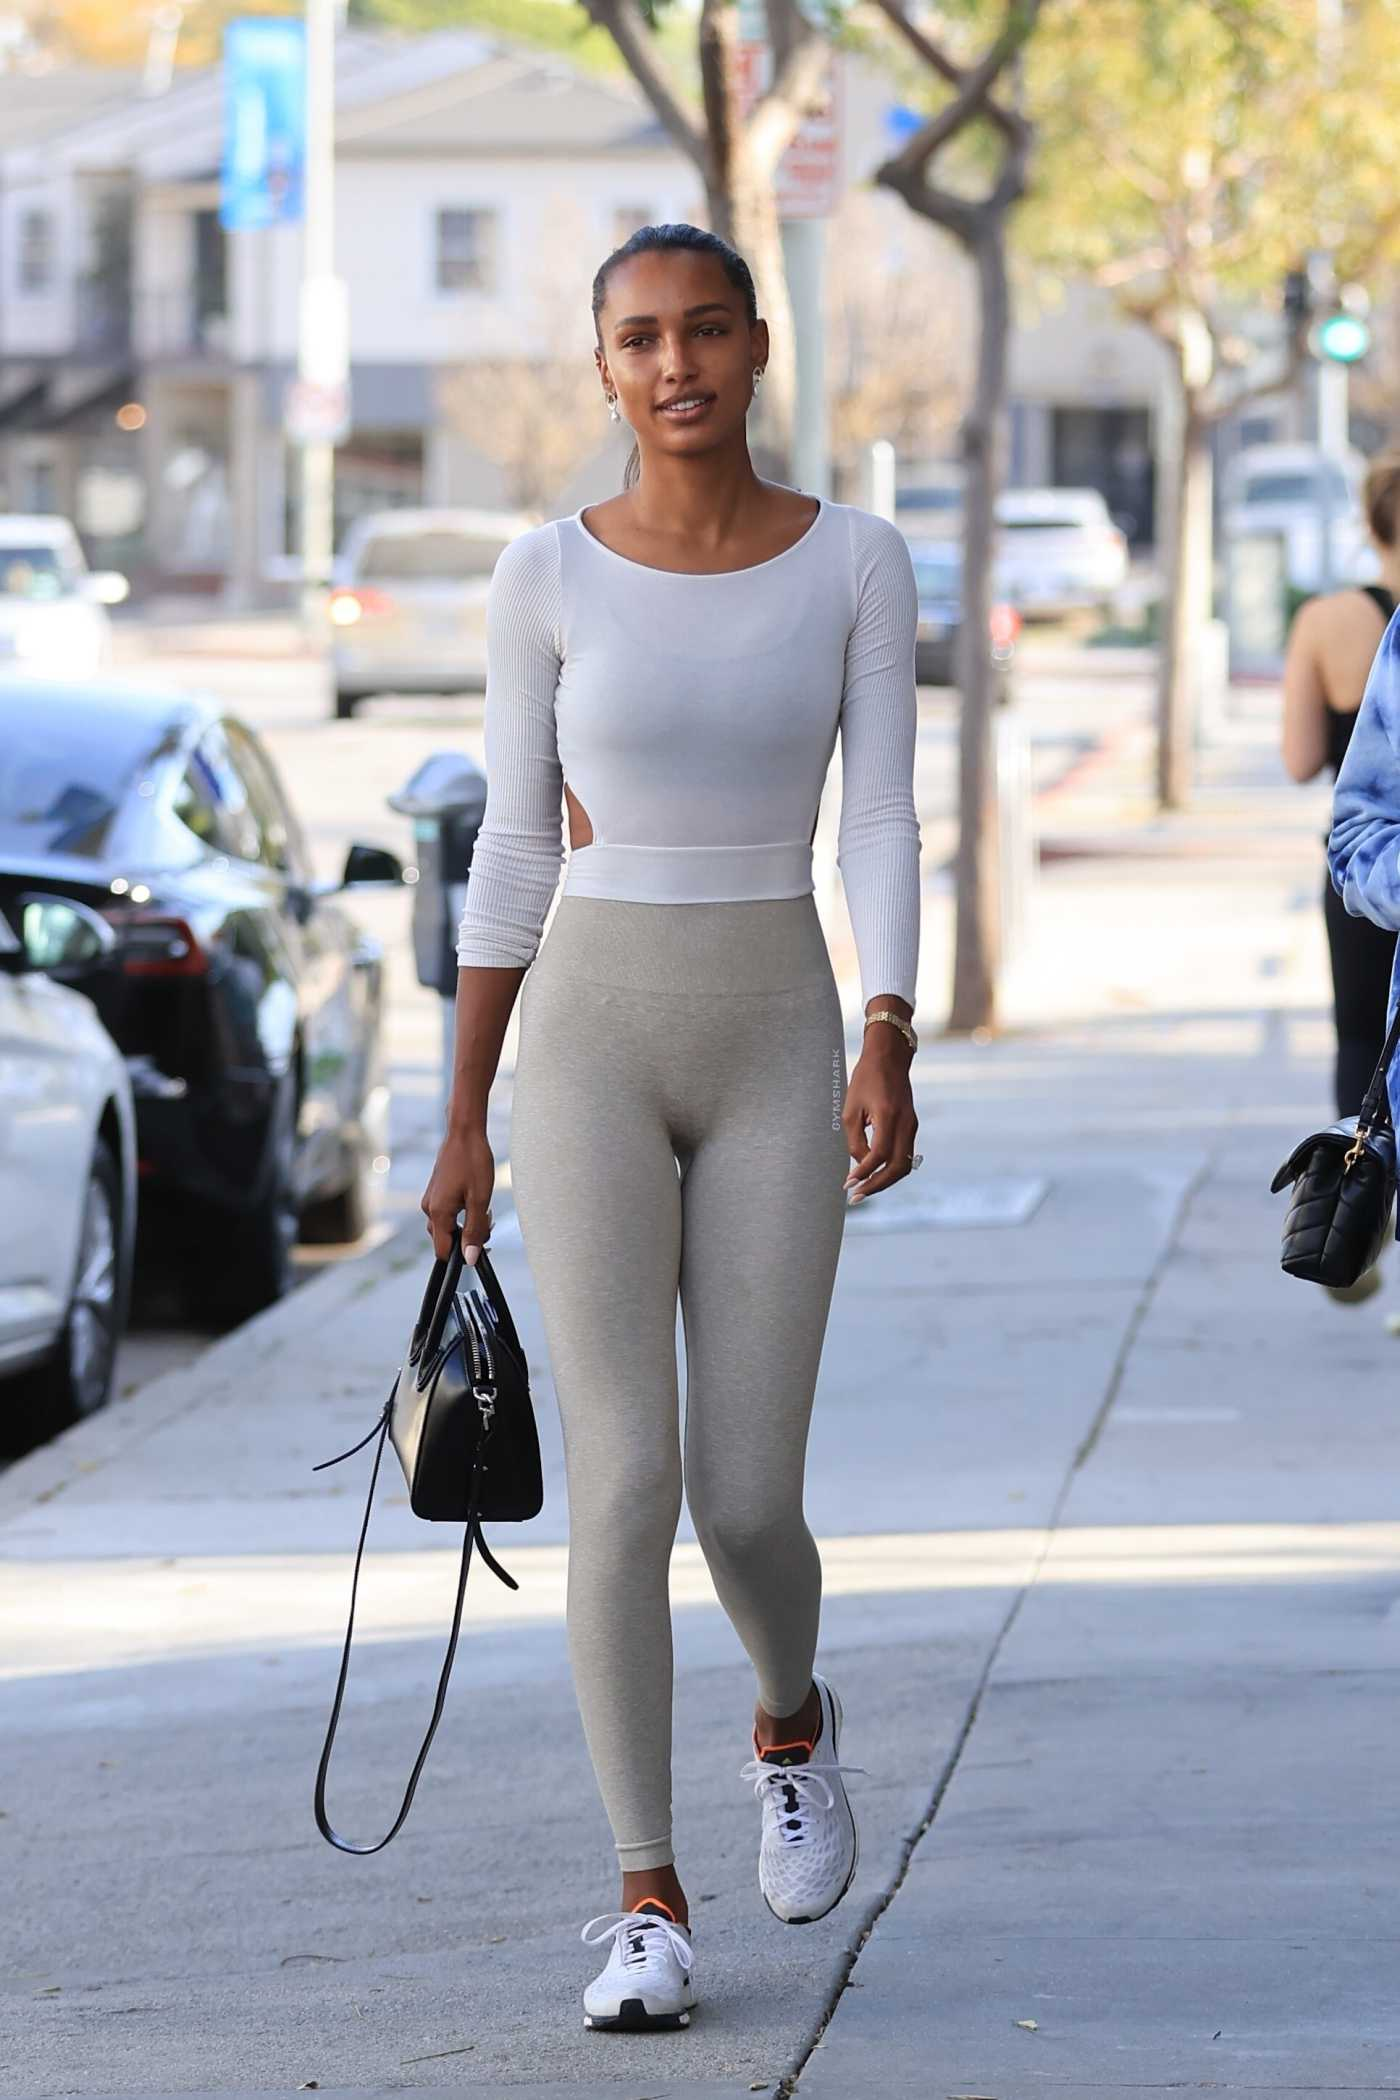 Jasmine Tookes in a Grey Leggings Was Spotted on Her Way to the Gym in Los Angeles 04/20/2021